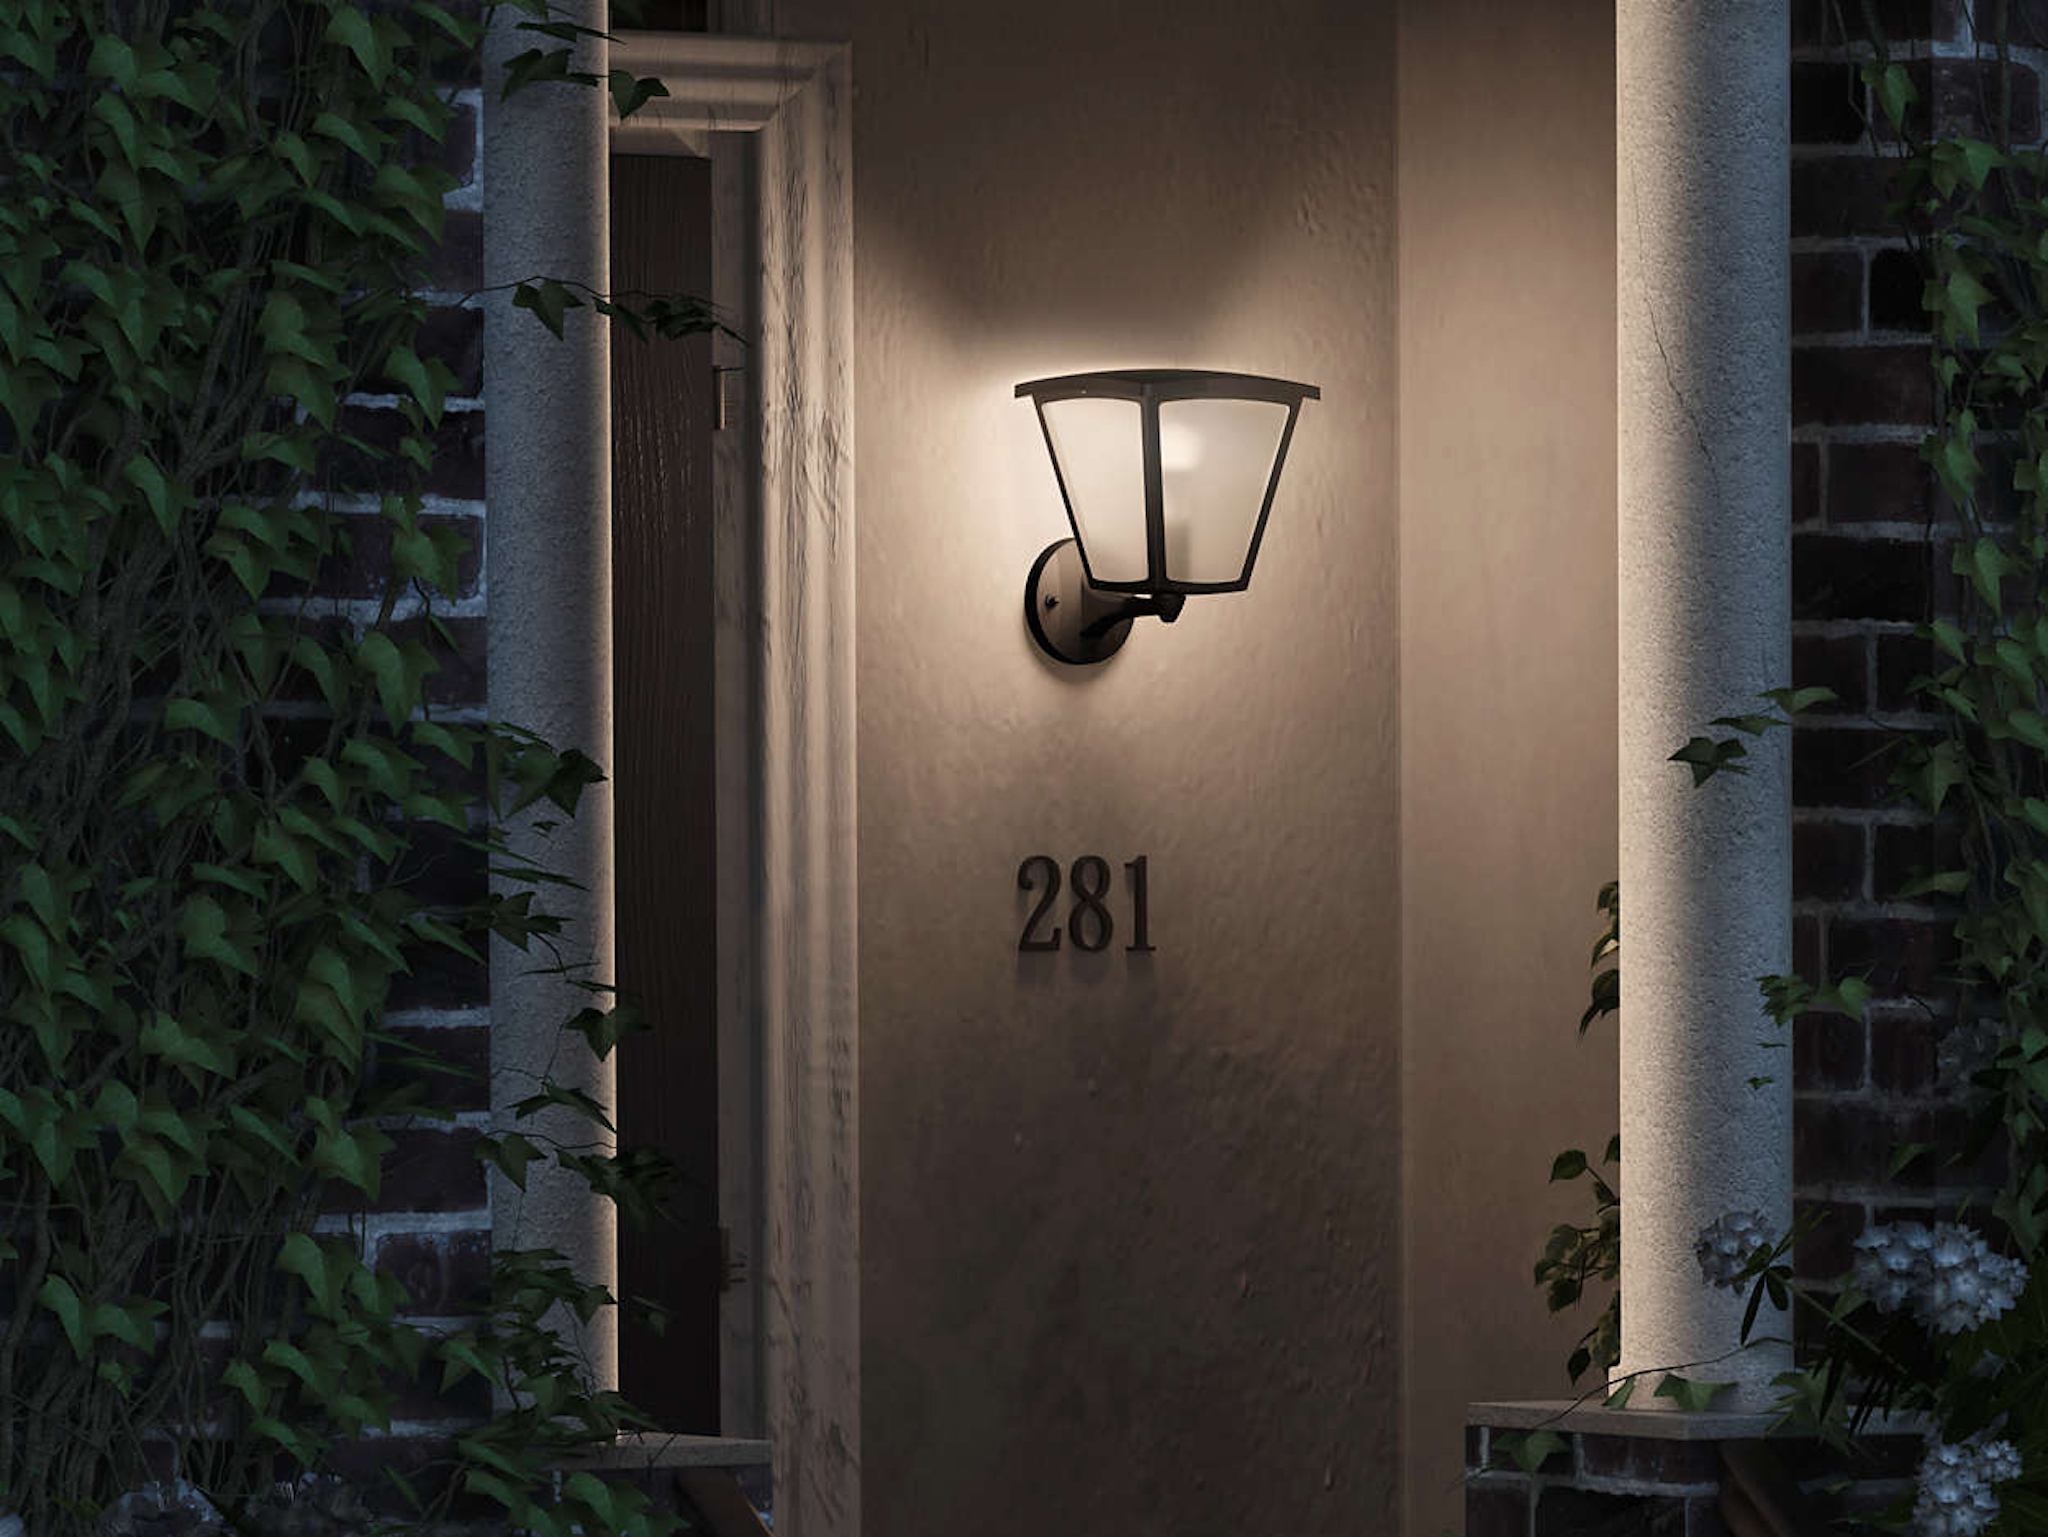 Philips Hue Outdoor Lampen.Can You Use A Philips Hue Color Bulb With The Inara Outdoor Wall